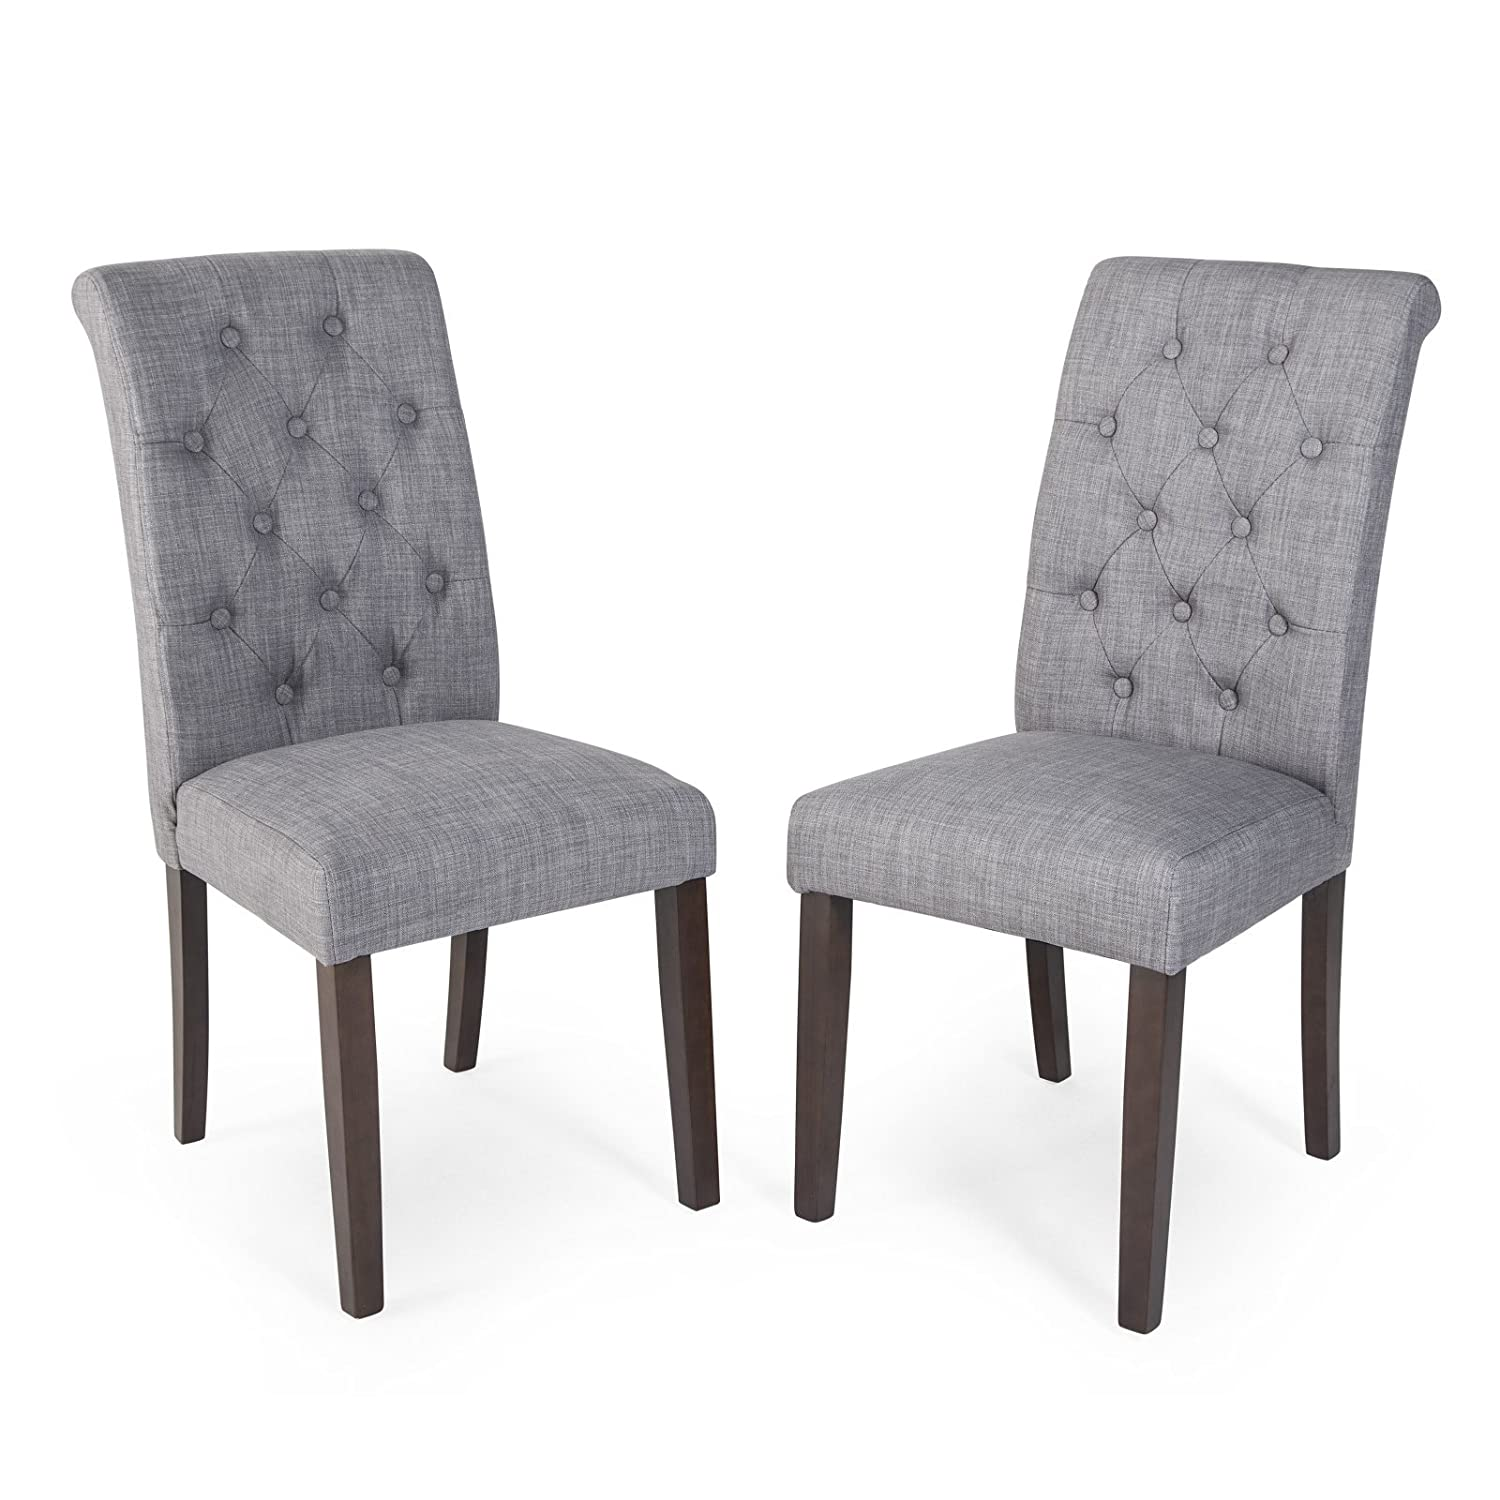 Amazon Tufted Parsons Dining Chairs Set of 2 Chairs